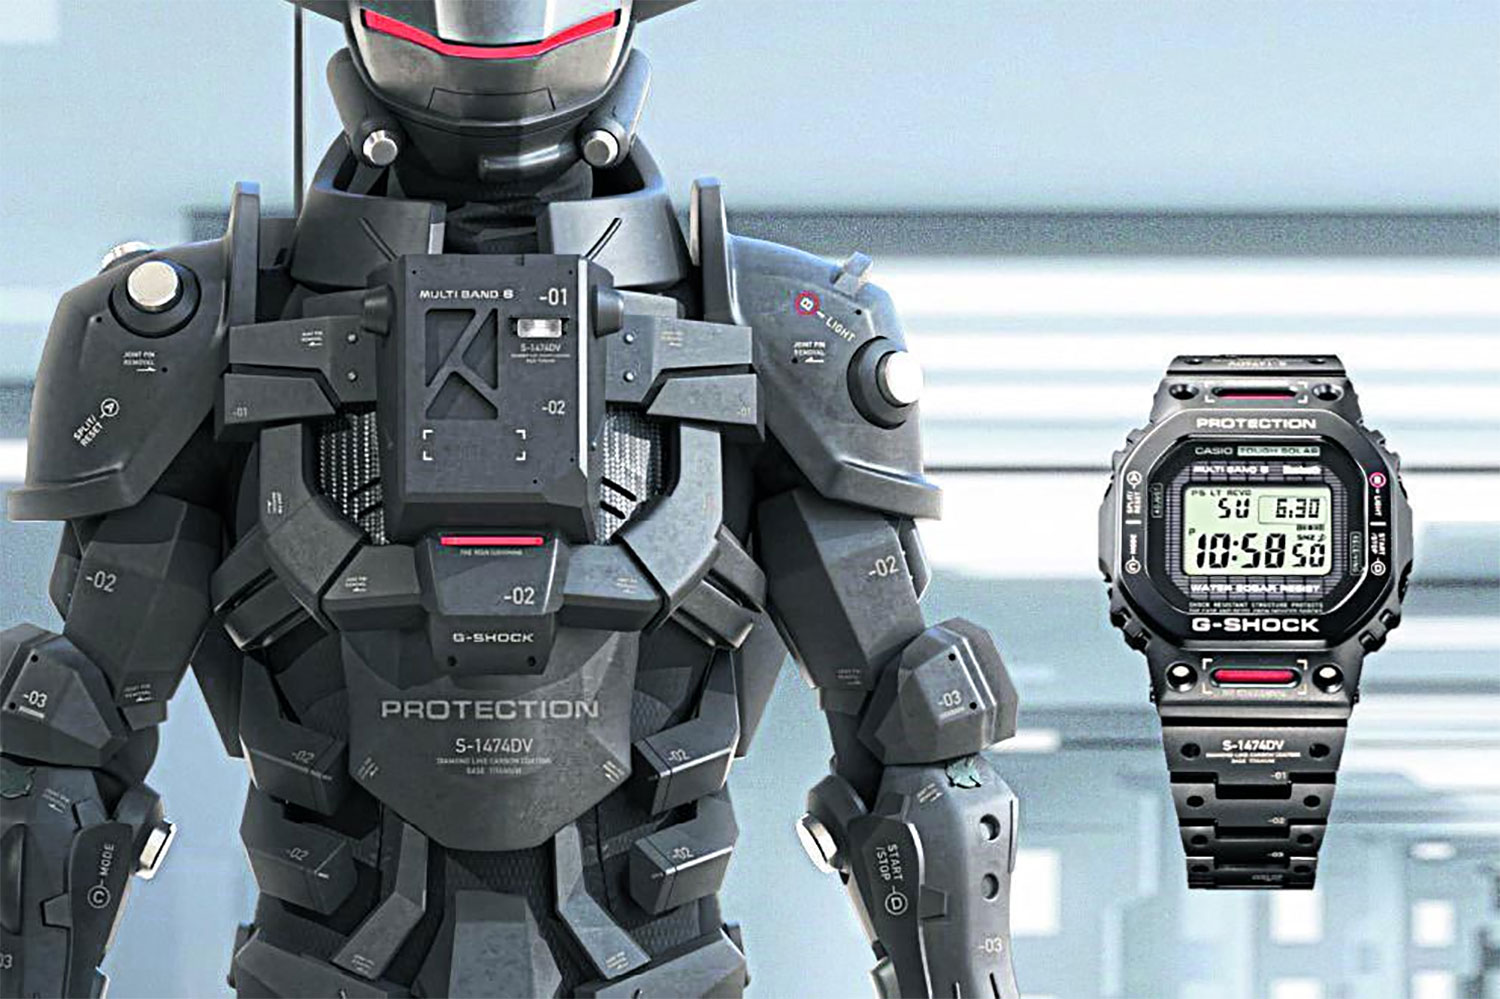 Casio launches extreme G-Shocks